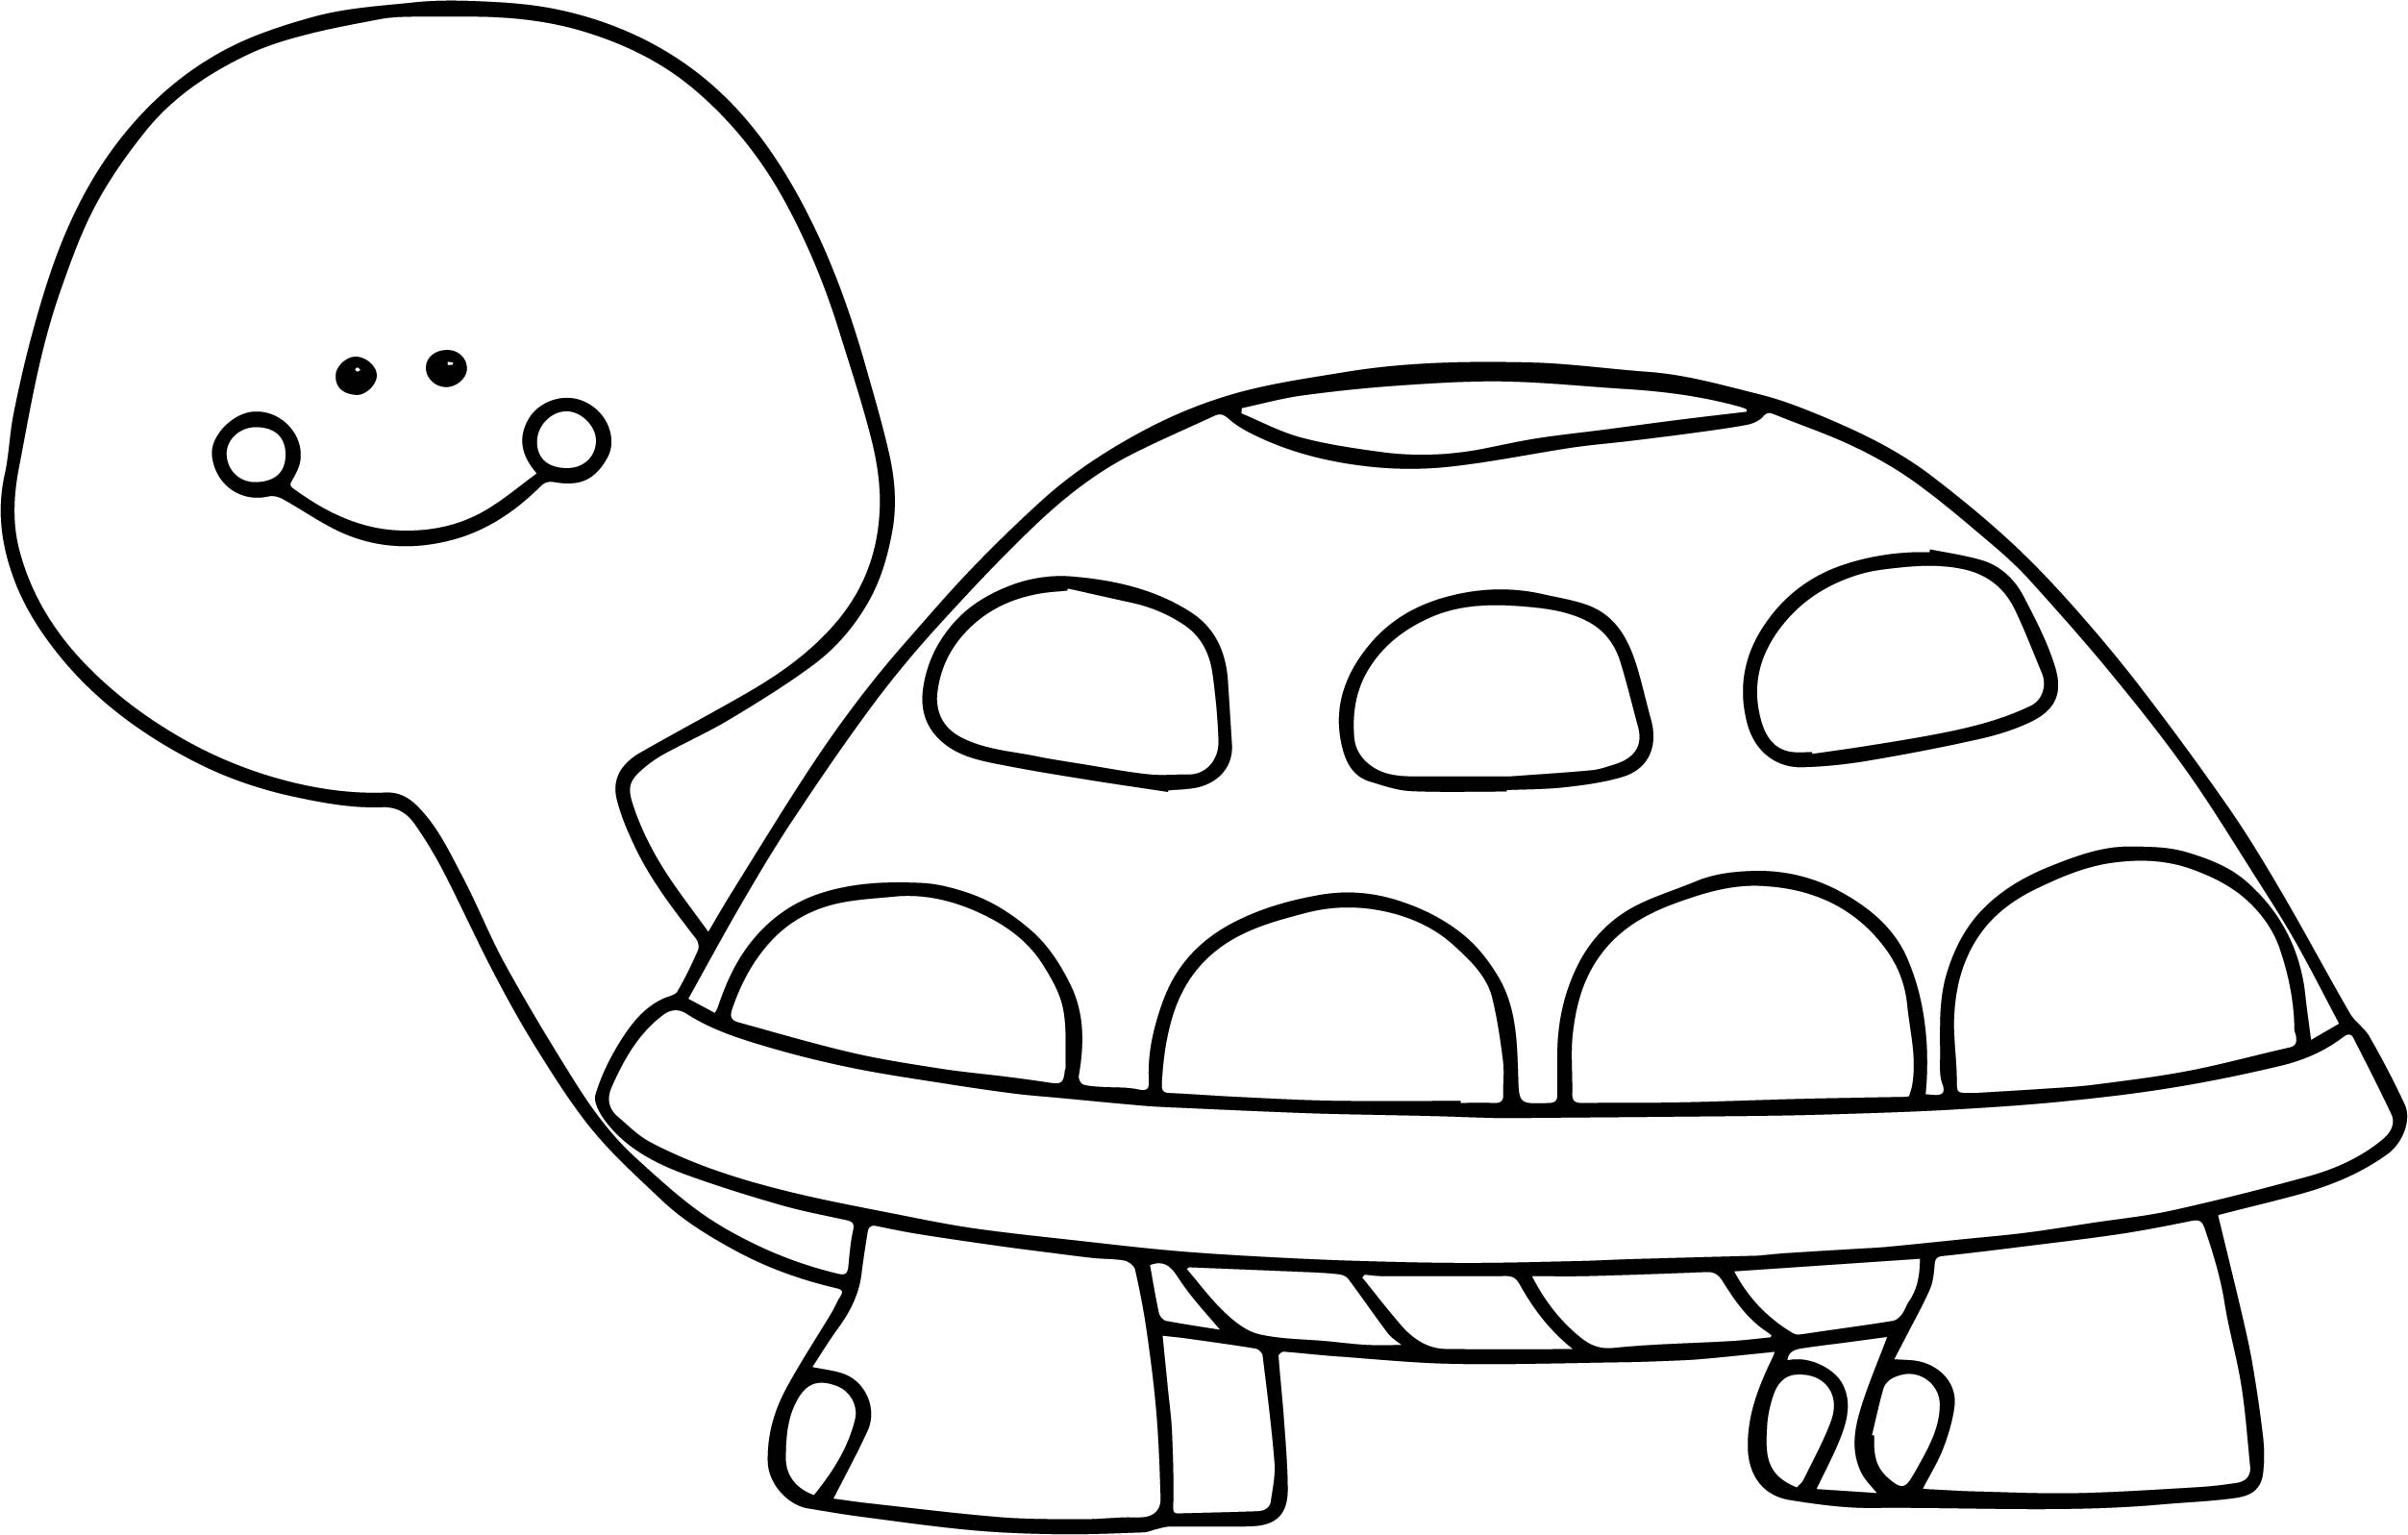 Blackline clipart turtle black and white Cute Turtle Clipart Black And White (99+ images in Collection) Page 2 black and white